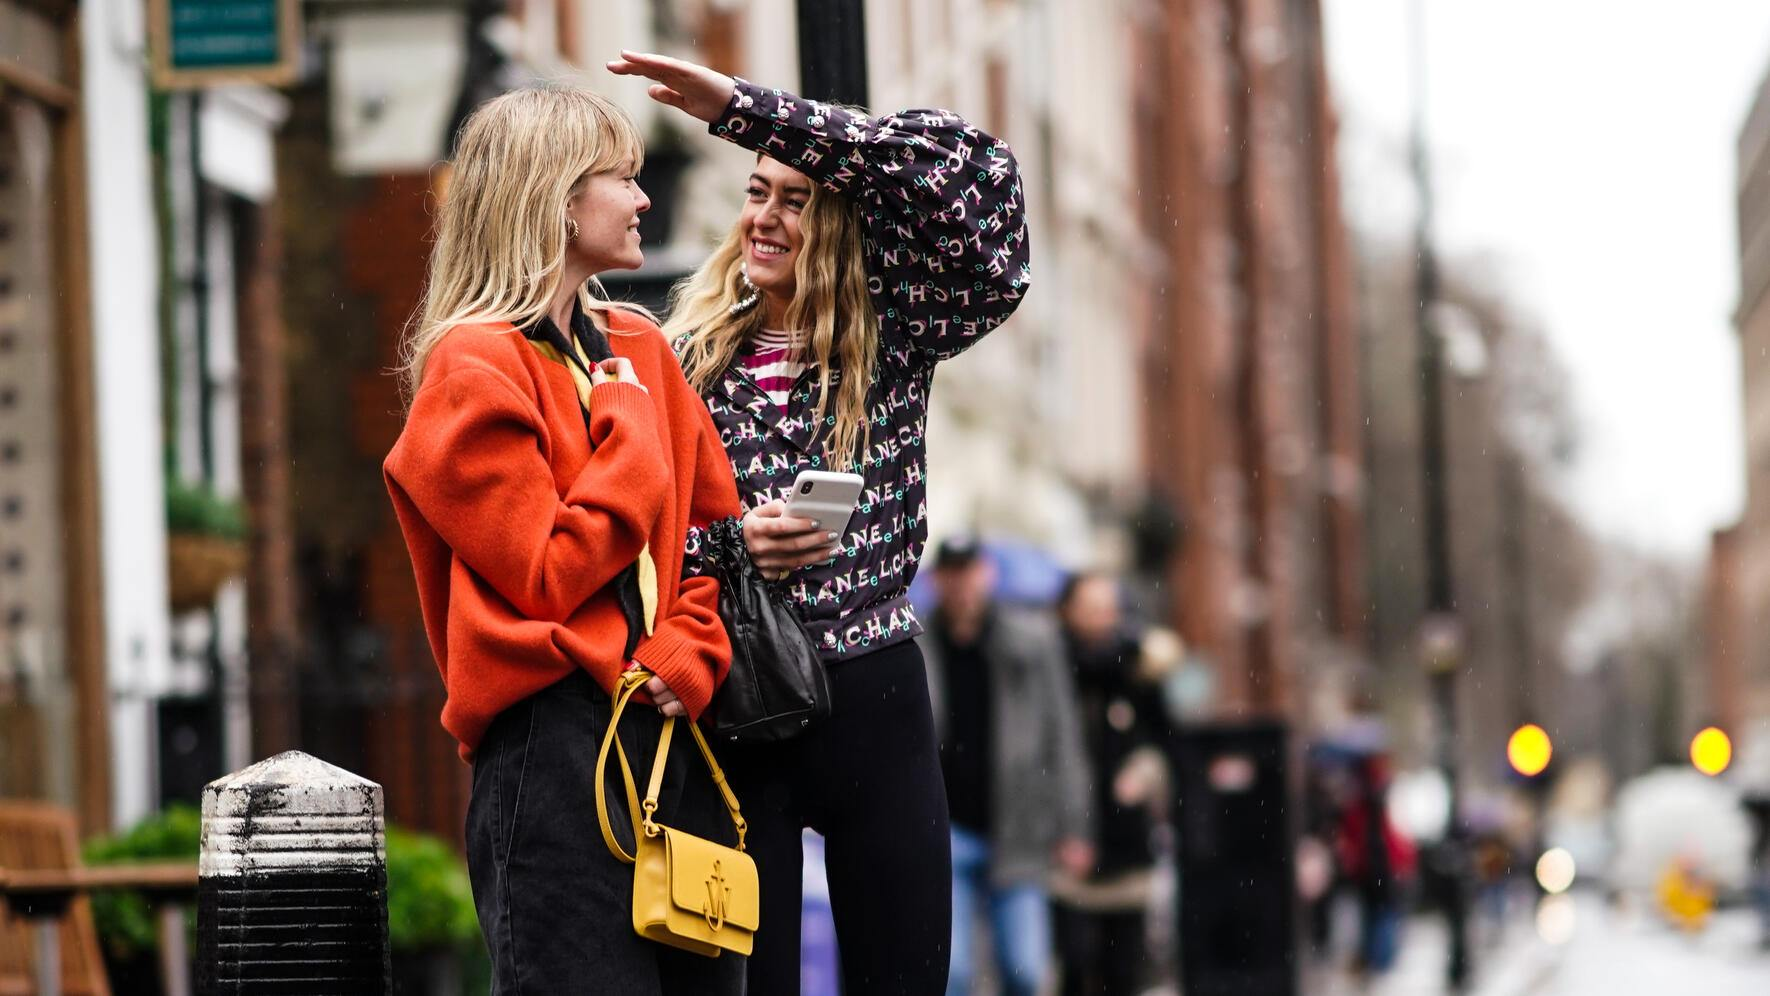 LONDON, ENGLAND - FEBRUARY 18: Jeanette Madsen and Emili Sindlev are seen, during London Fashion Week February 2019 on February 18, 2019 in London, England. (Photo by Edward Berthelot/Getty Images)